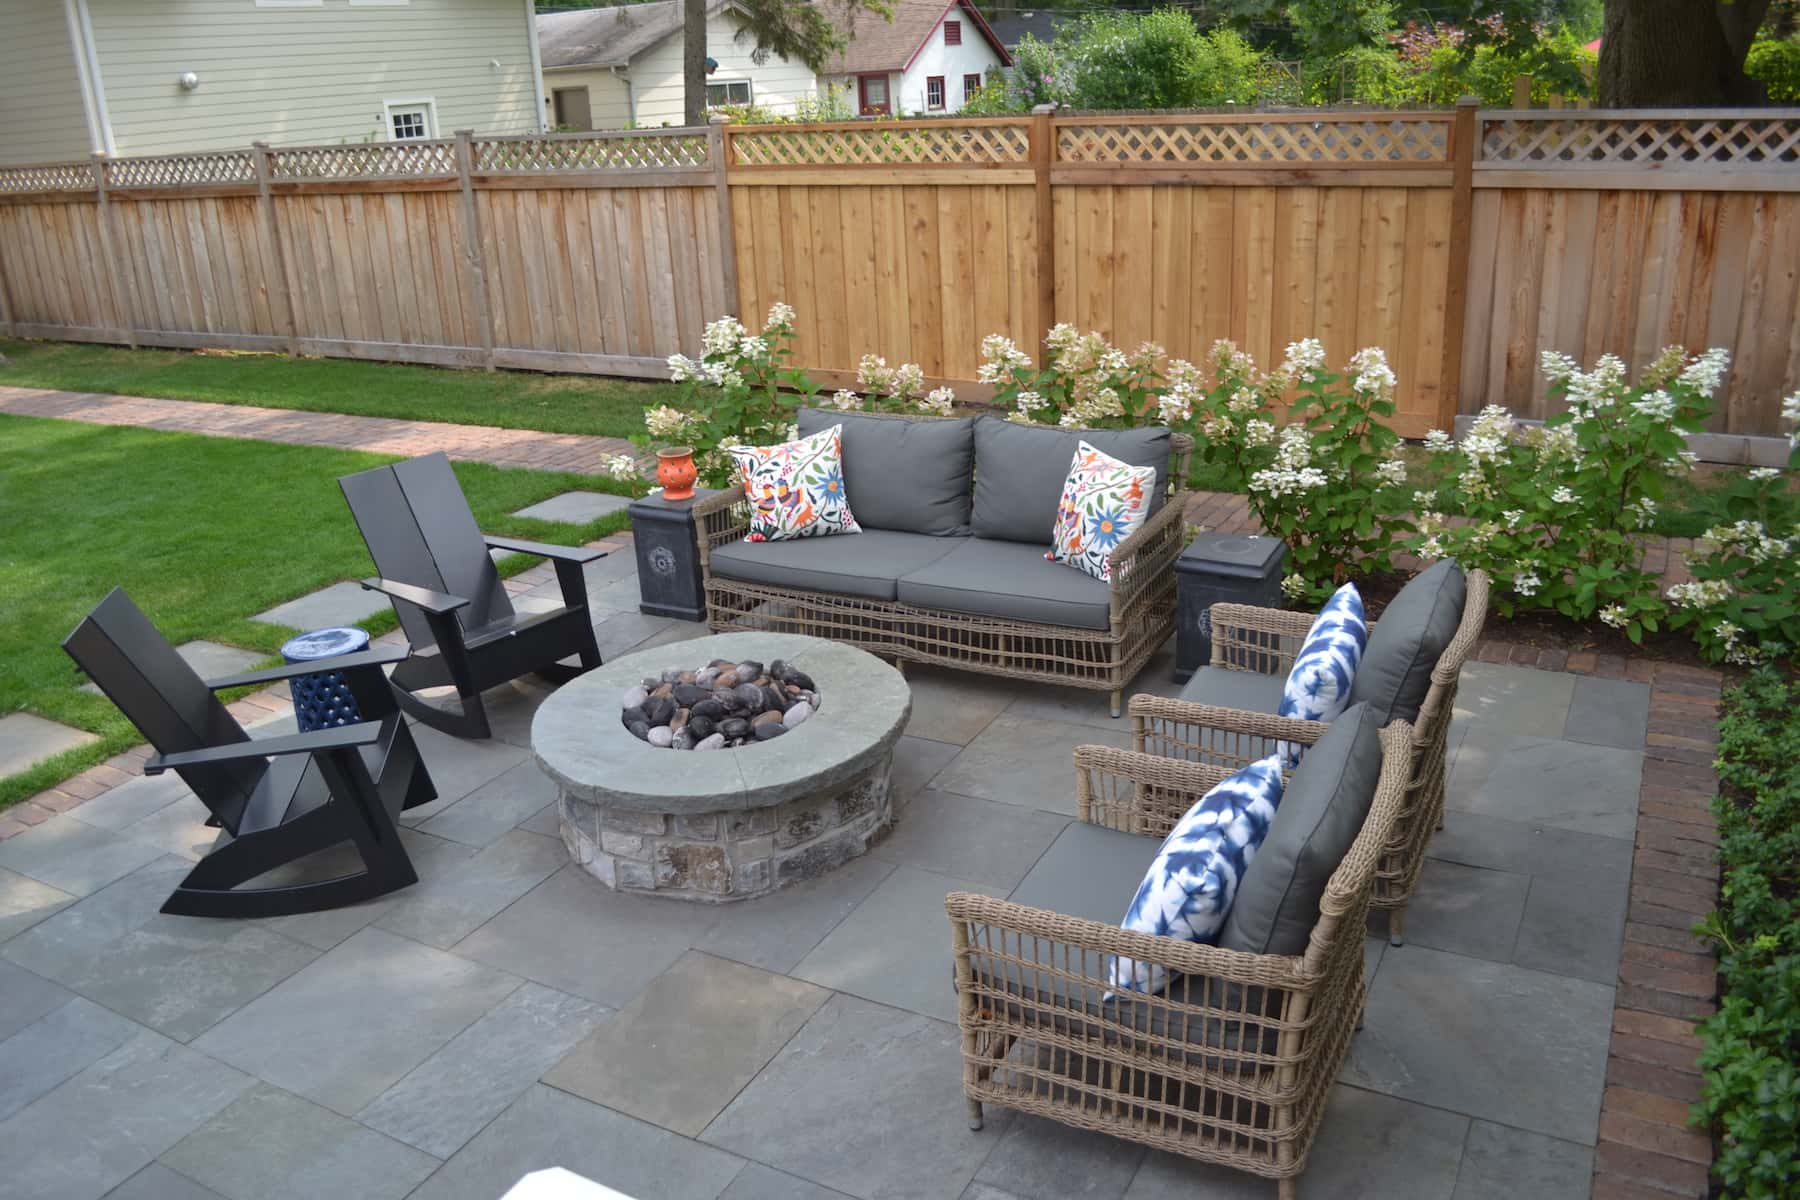 Bluestone Patio, Reclaimed Paver Border & Natural Stone Fire Pit